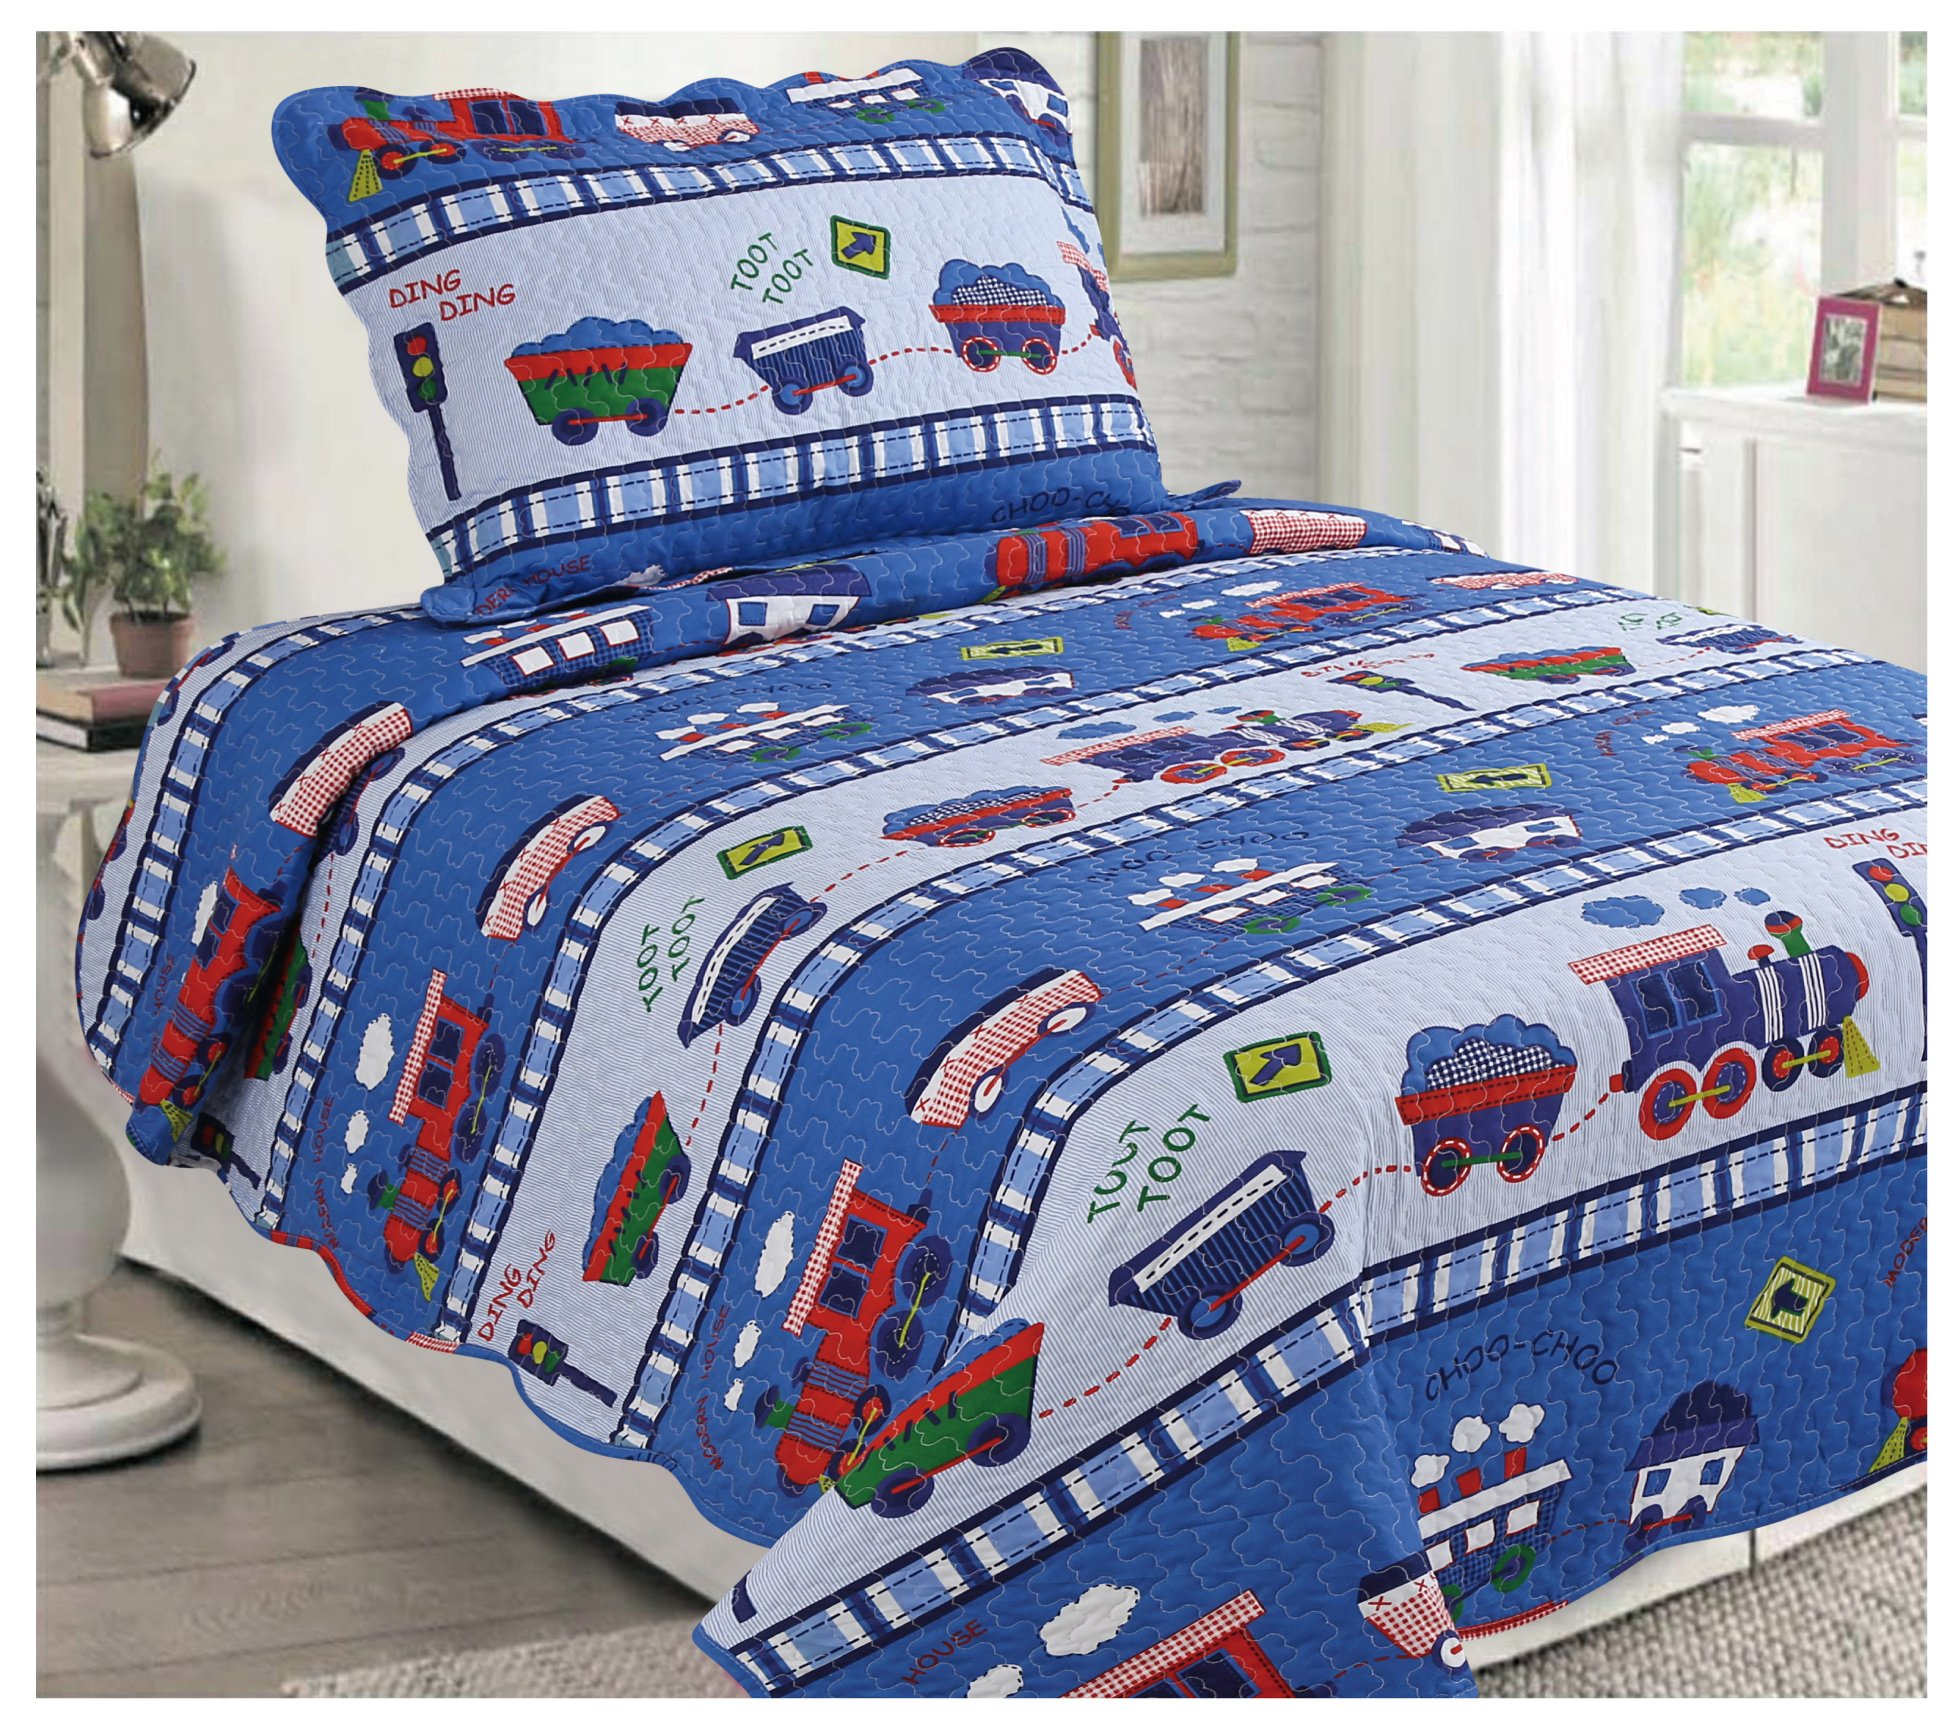 Elegant Home Blue Multicolor Kids Choo Choo Train Cars and Railroad 2 Piece Bedding Quilt Coverlets Bedspread Set Twin Size # 13029